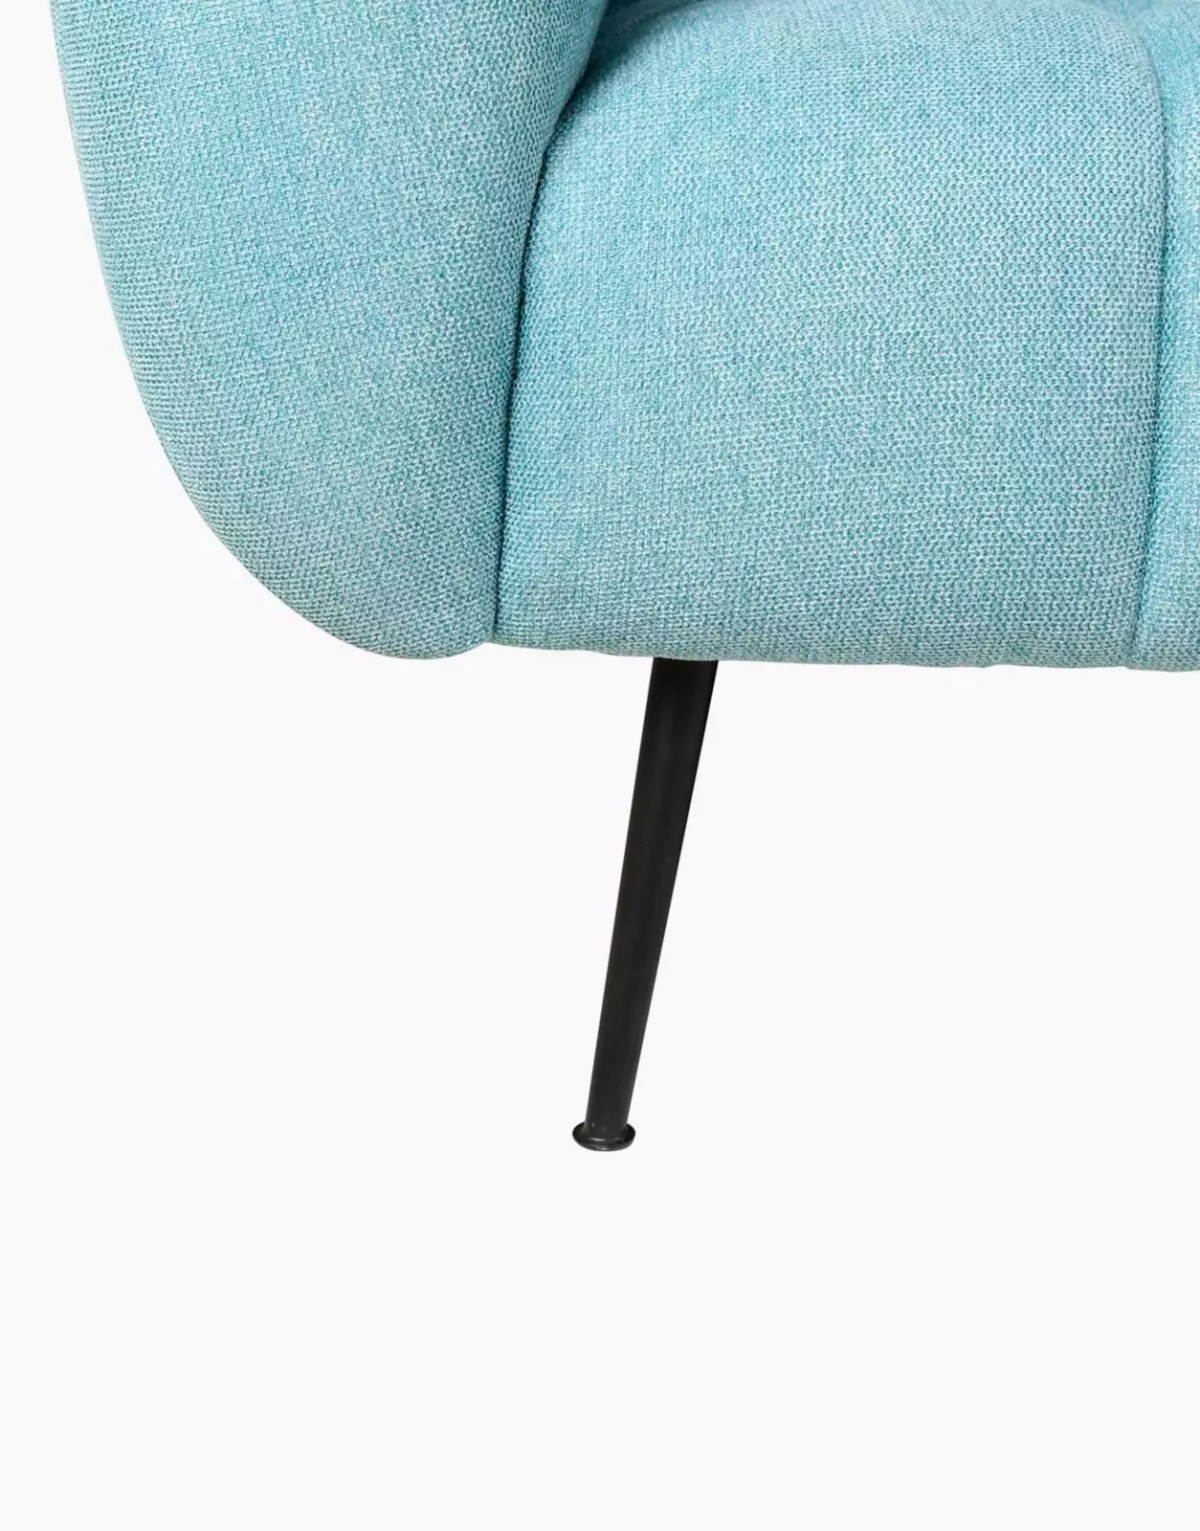 #zago #design #sodesign #solutiondesign #solutiondesignfr #france #canapedesign #conteporain #comtemporain #canape #fauteuil #new #fauteuildesign #assise #assises #chaise